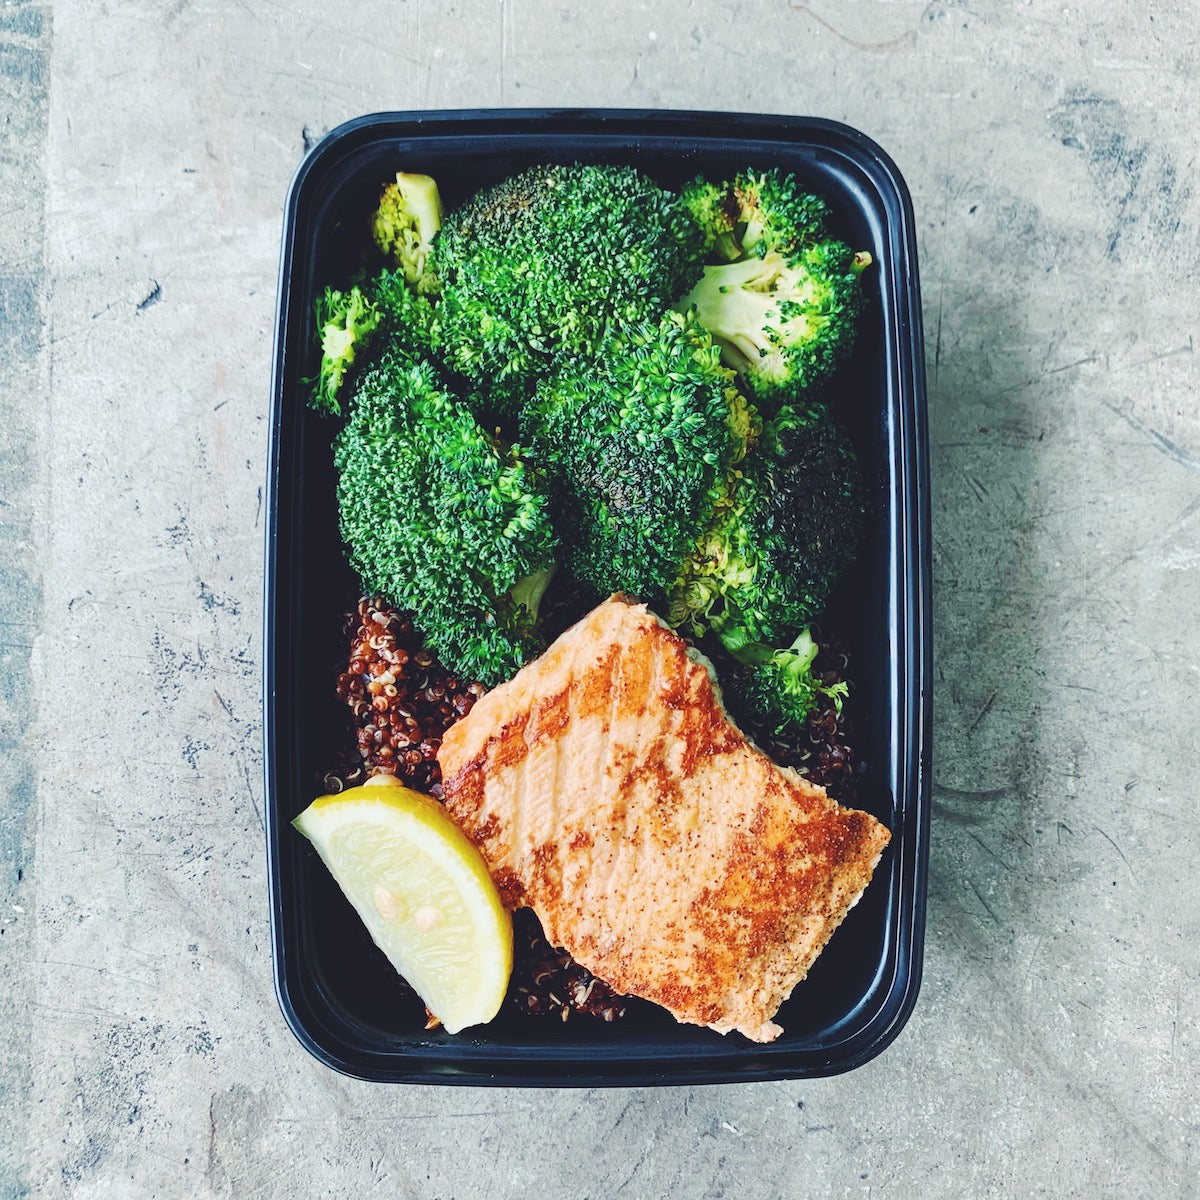 ROASTED SALMON + QUINOA